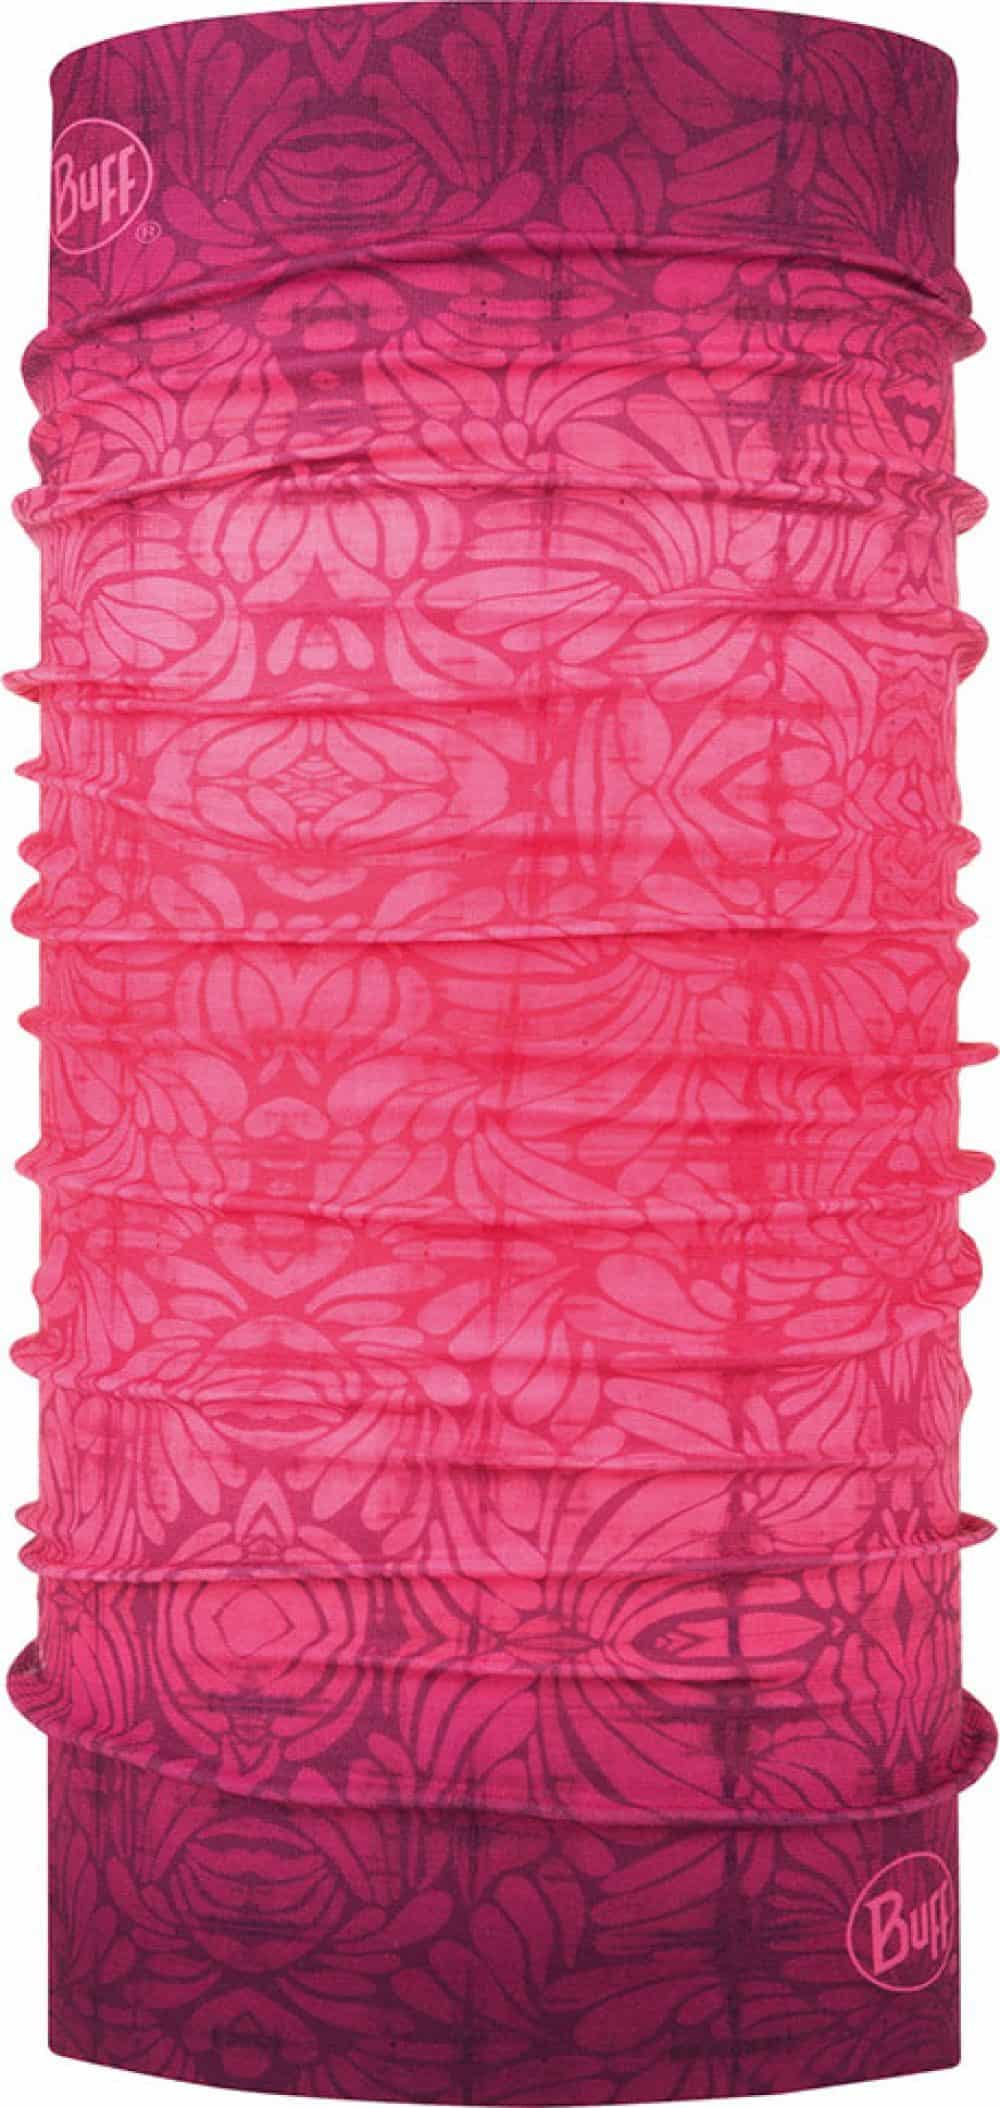 "Studio photo of the Original Buff® Design ""Boronia Pink"". Source: buff.eu"